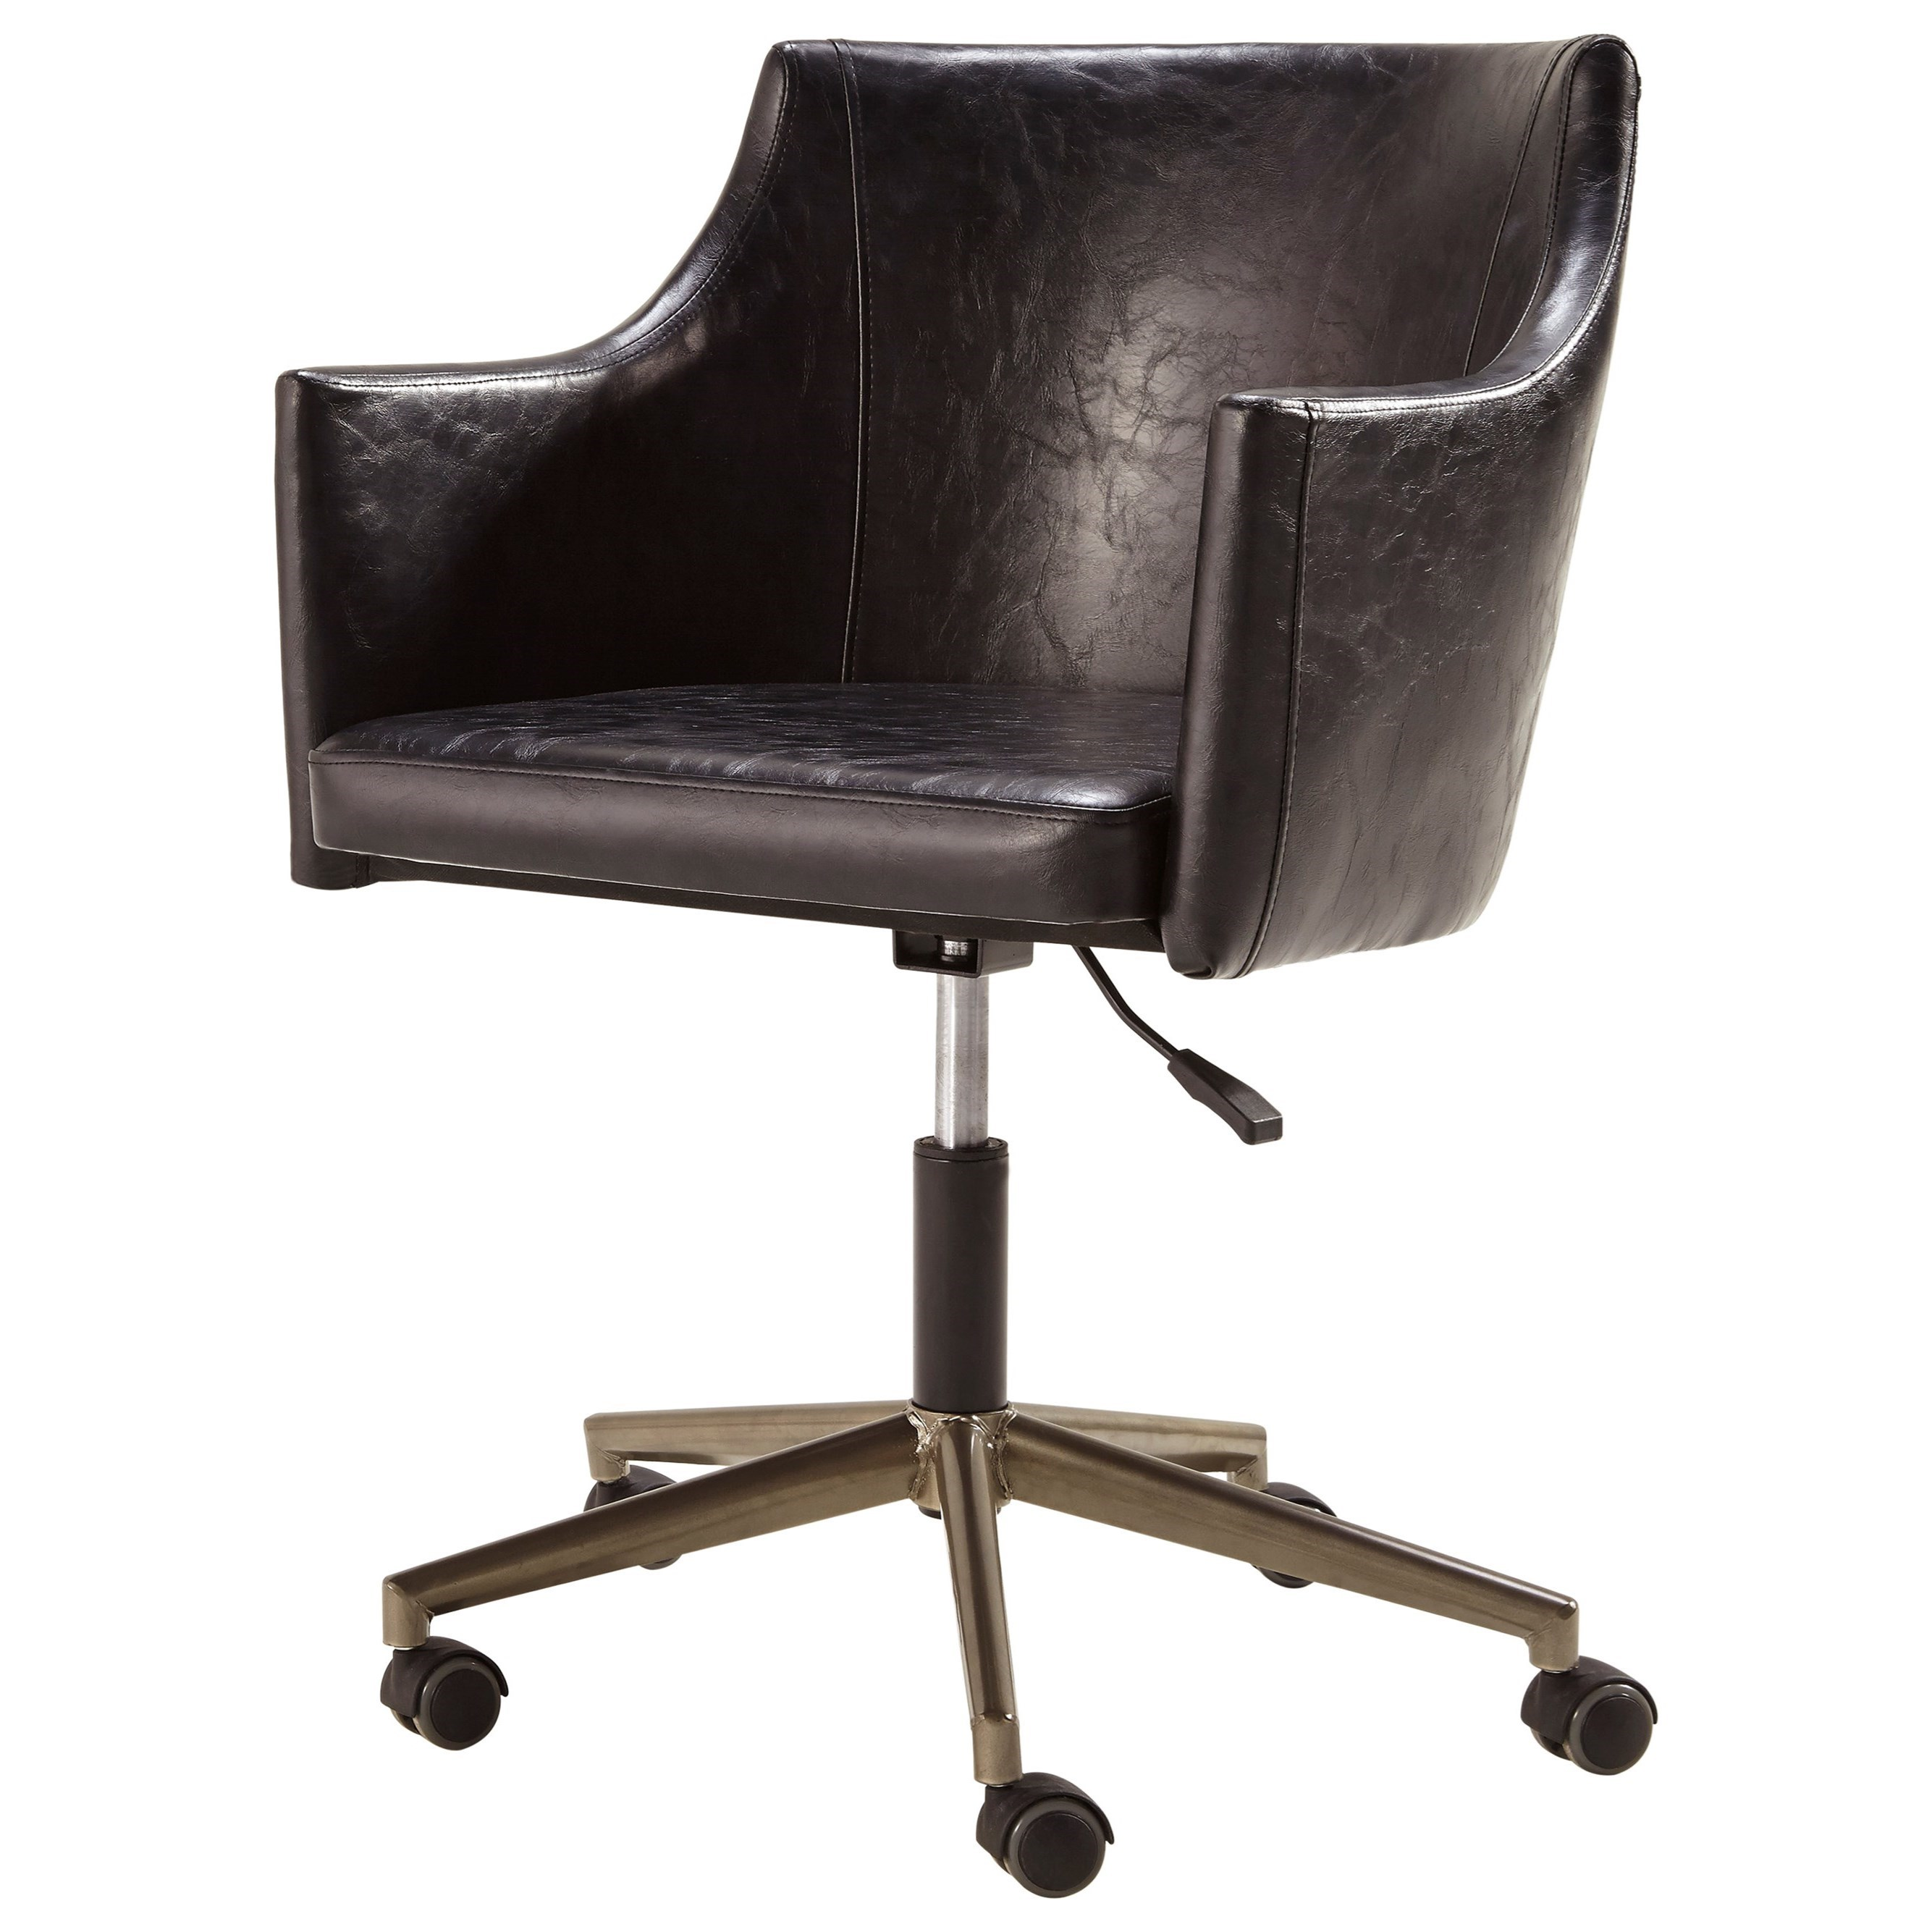 Signature Design by Ashley Tremile Home Office Desk Chair - Item Number: H698-01A